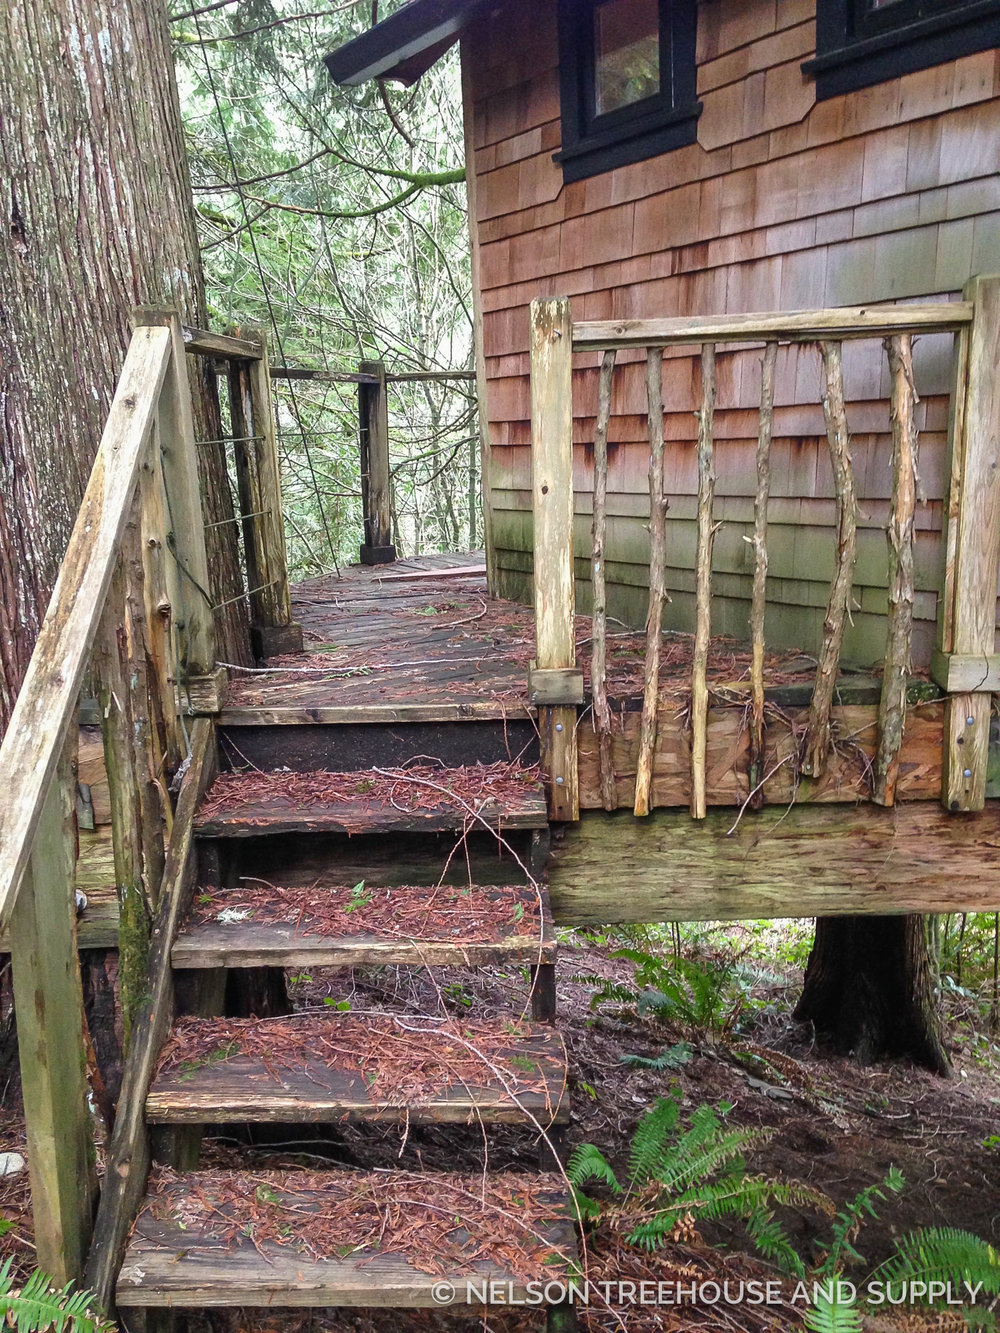 Treehouses in wet environments like the Pacific Northwest require upkeep to prevent wood rot. The crew replaced the stairs, railings, and deck with pressure-treated wood.